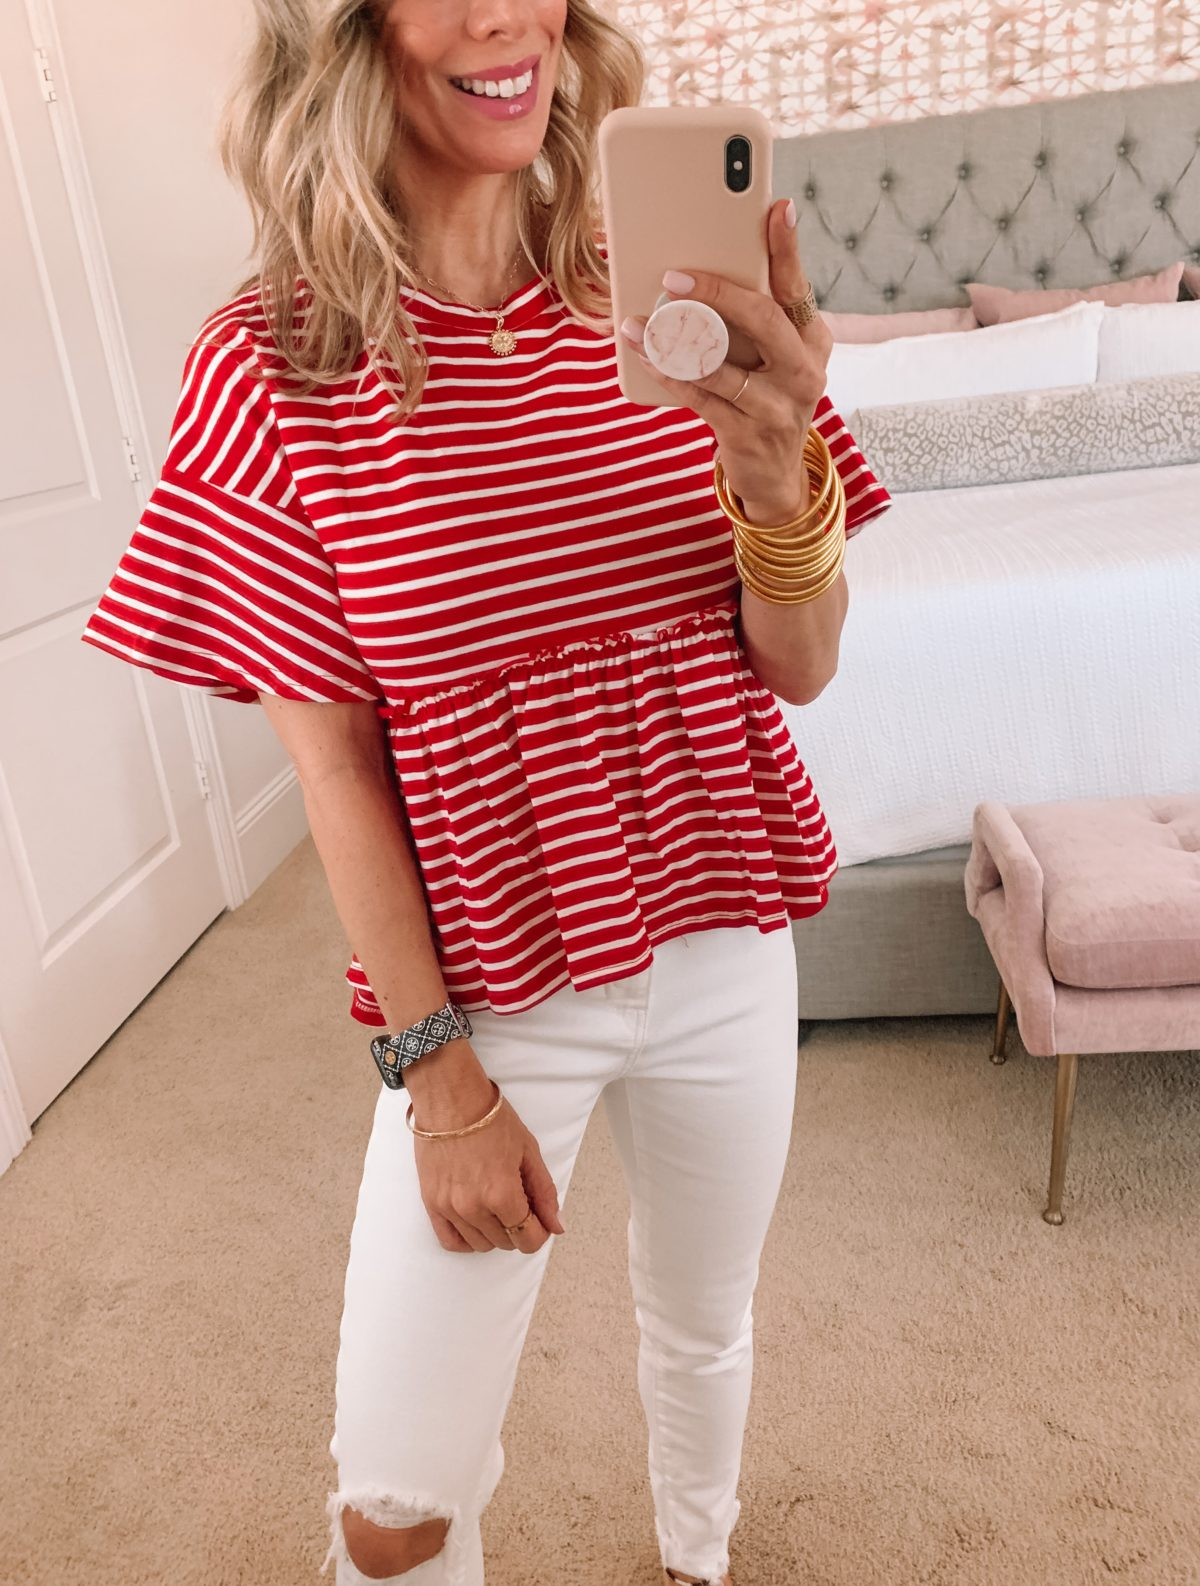 Amazon Fashion Faves, Red Striped Peplum Top and Jeans with slides